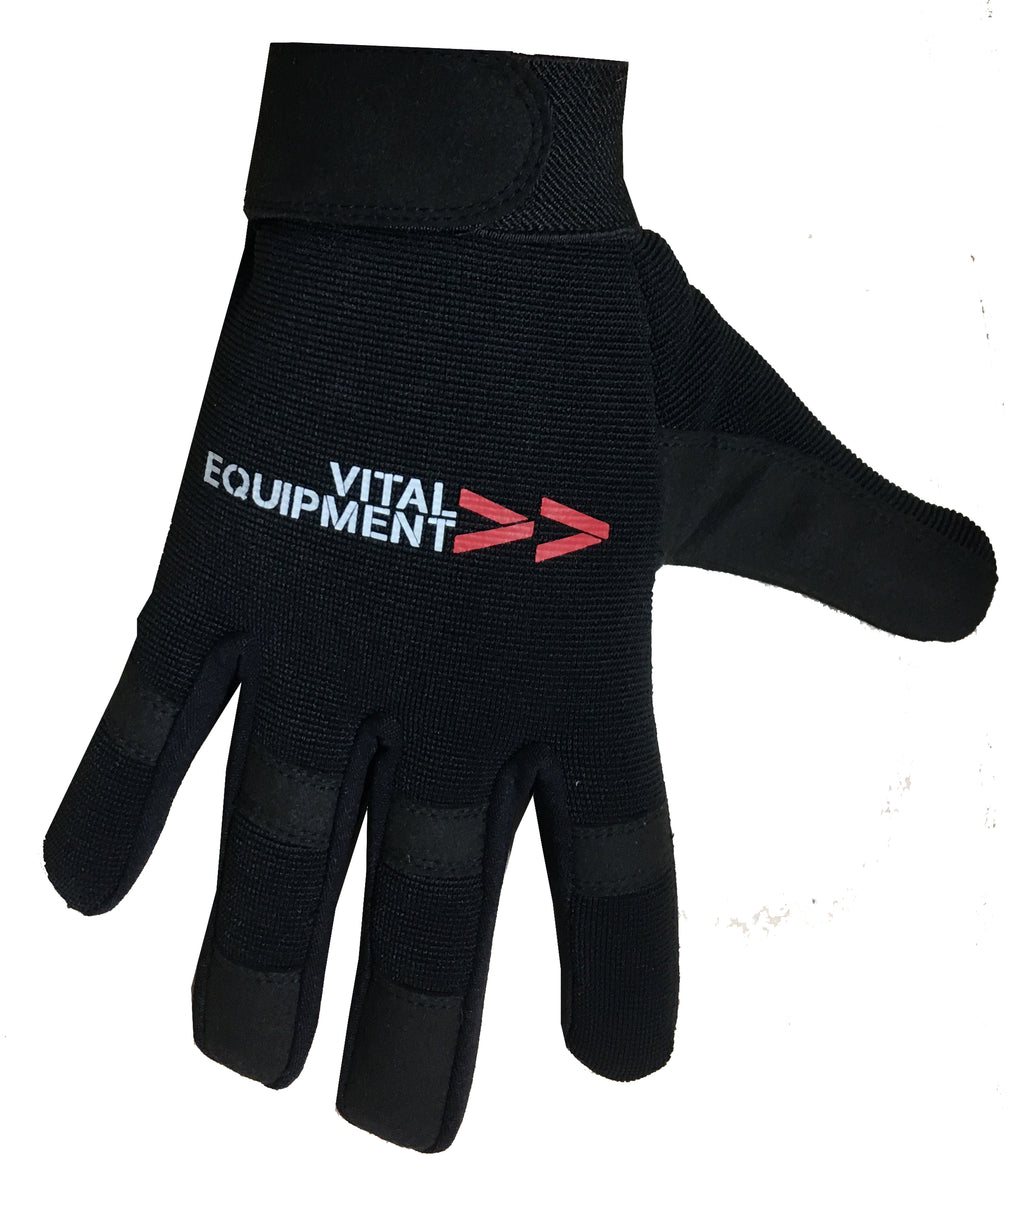 Vital Equipment Mechanic Gloves